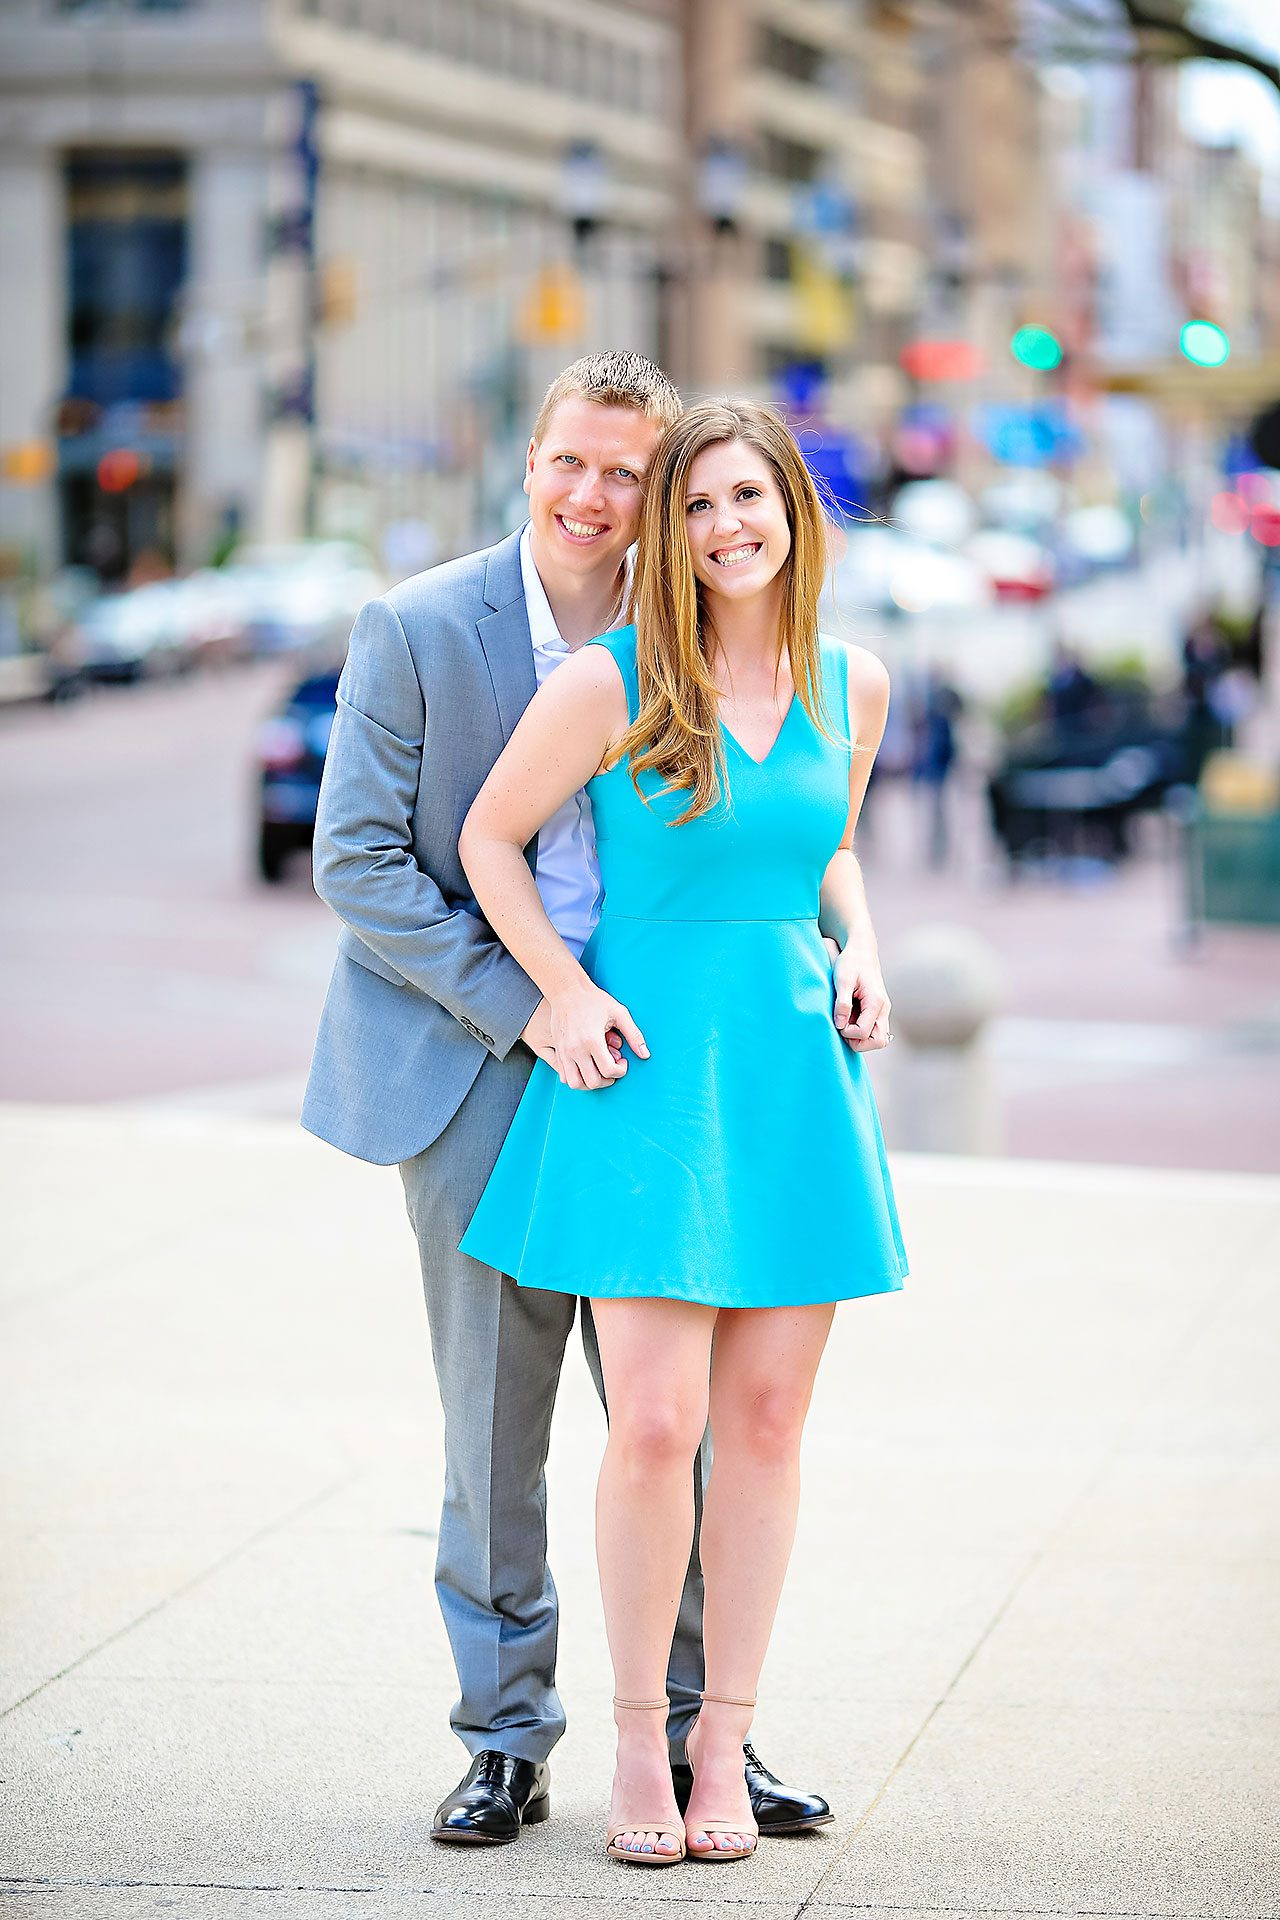 Chelsea Jeff Downtown Indy Engagement Session 013